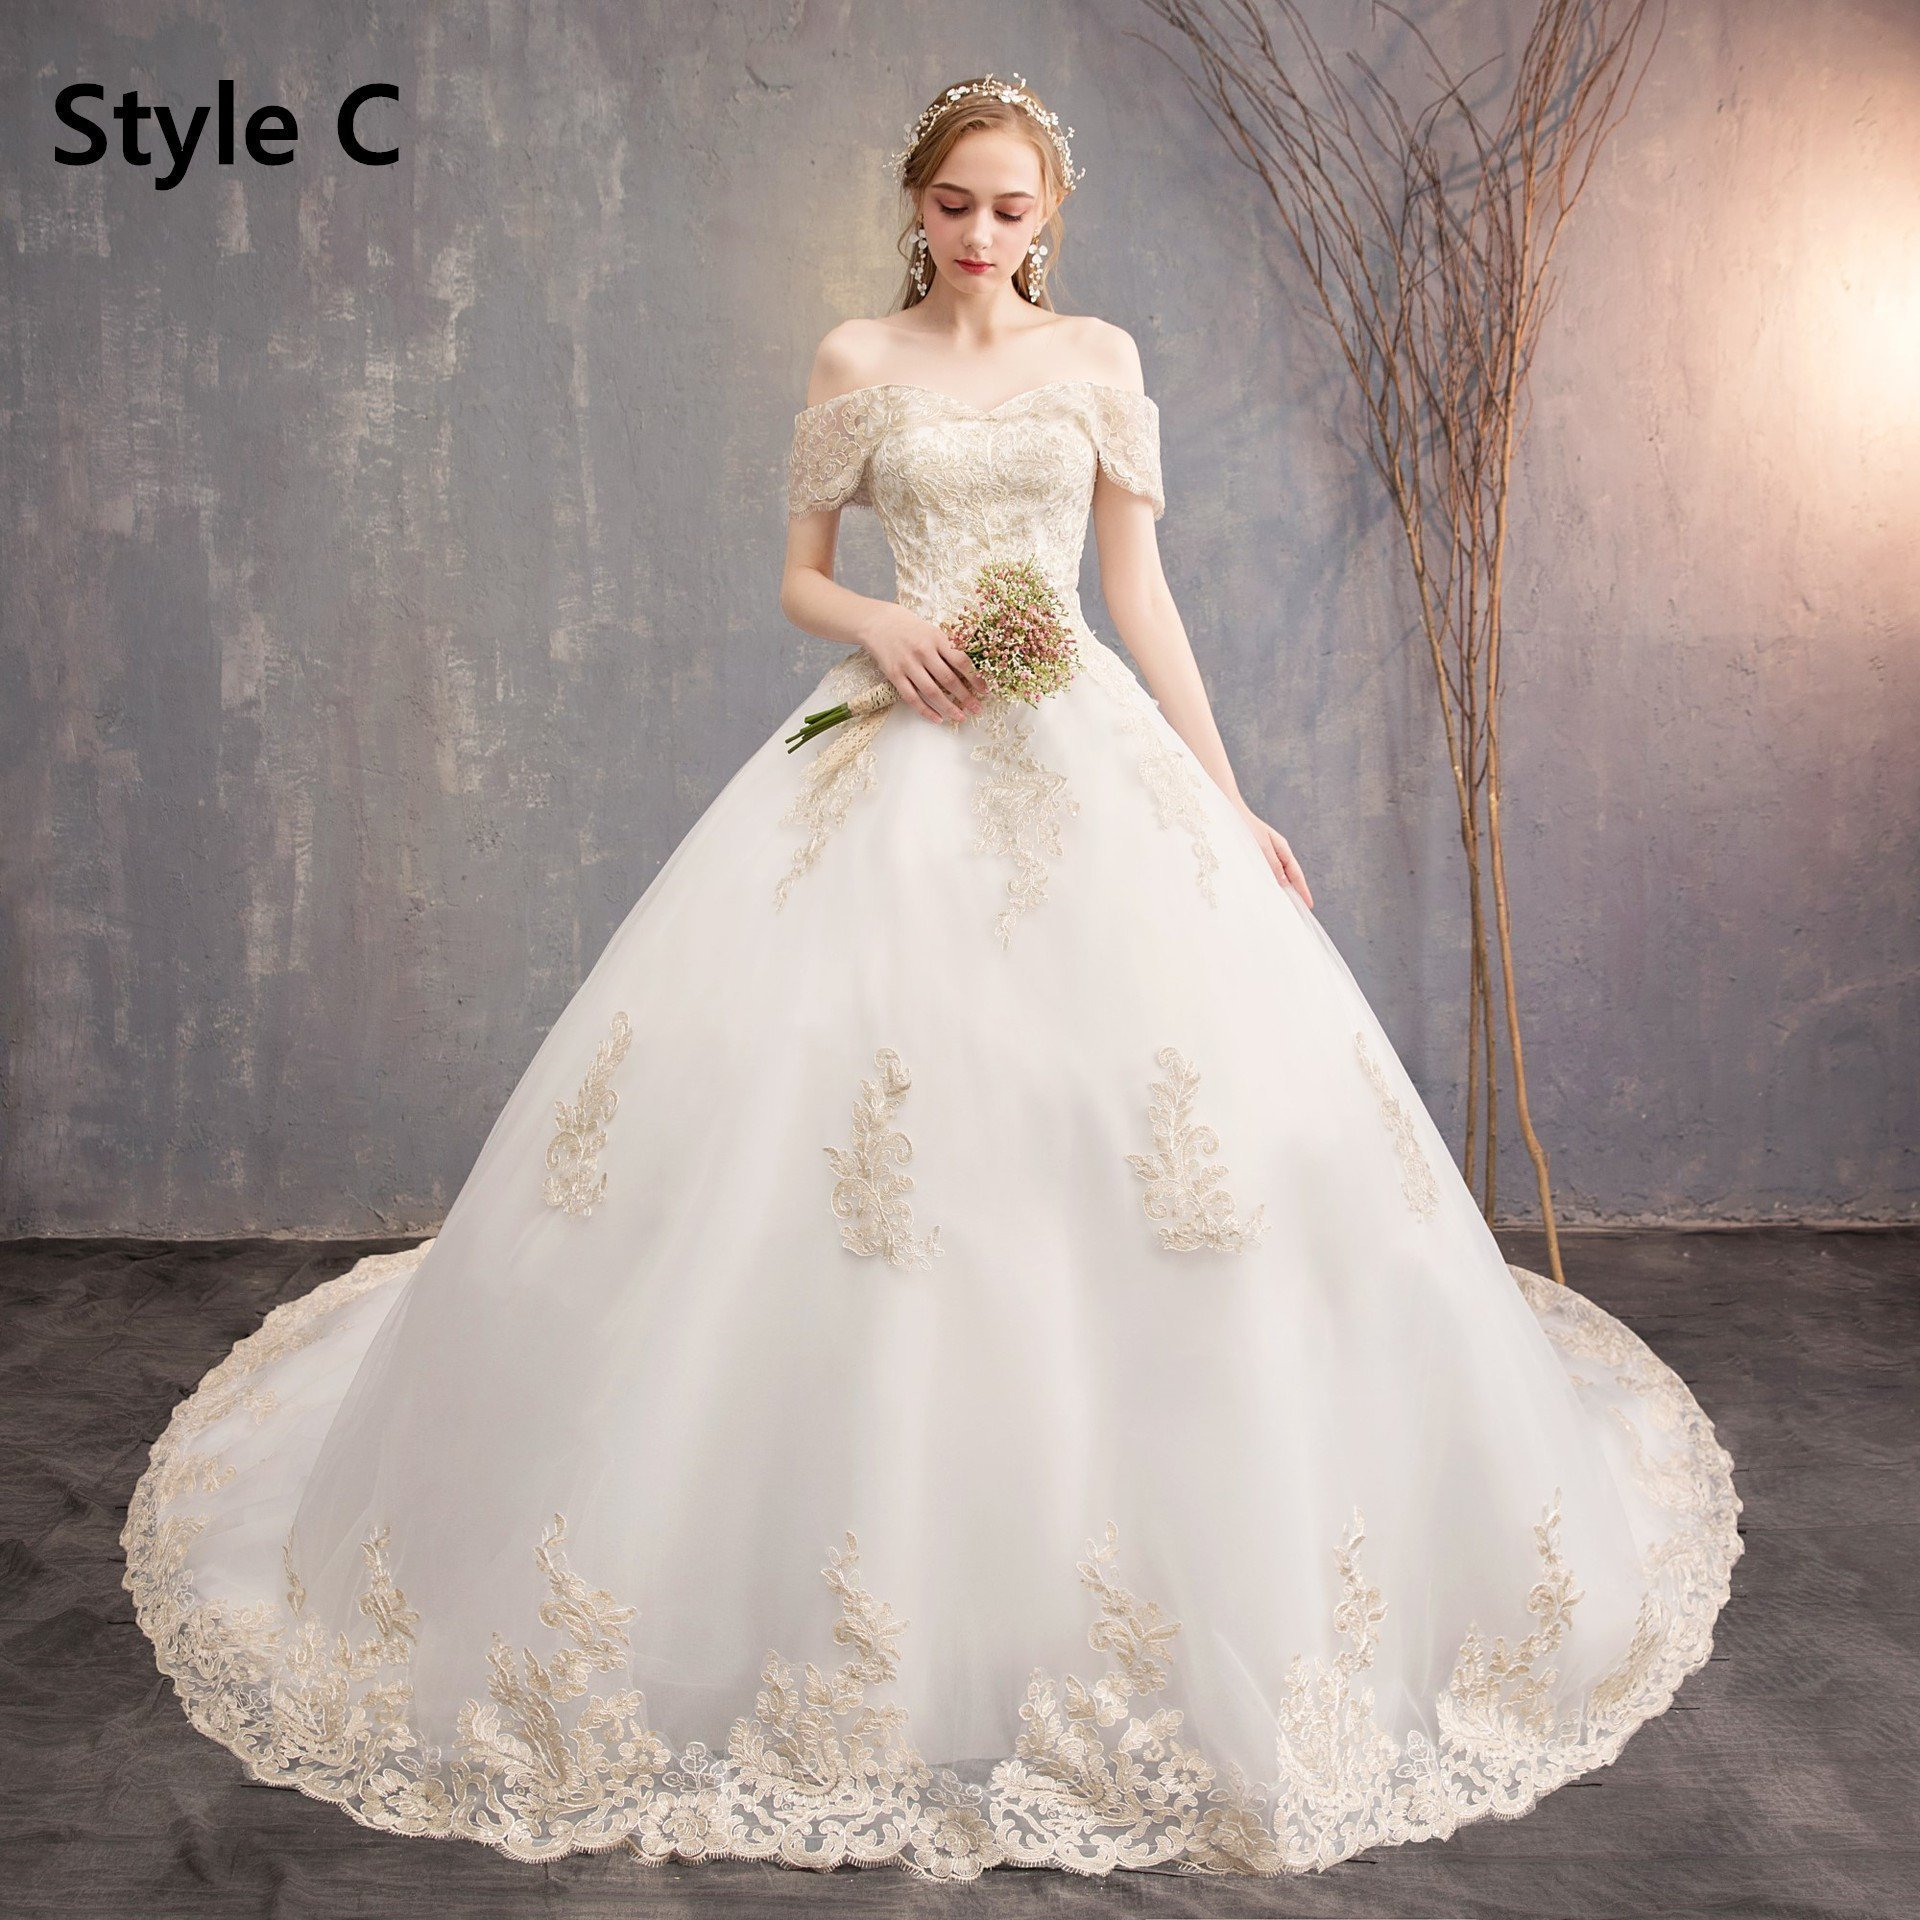 Best Wedding Dresses Lace Dresses Christmas Wedding Guest Outfit Mustard Yellow Dress Wedding Reception Lehengas For Bride Short Prom Dresses 2019 Dark Grey Bridesmaid Dresses Sepedi Wedding Dresses